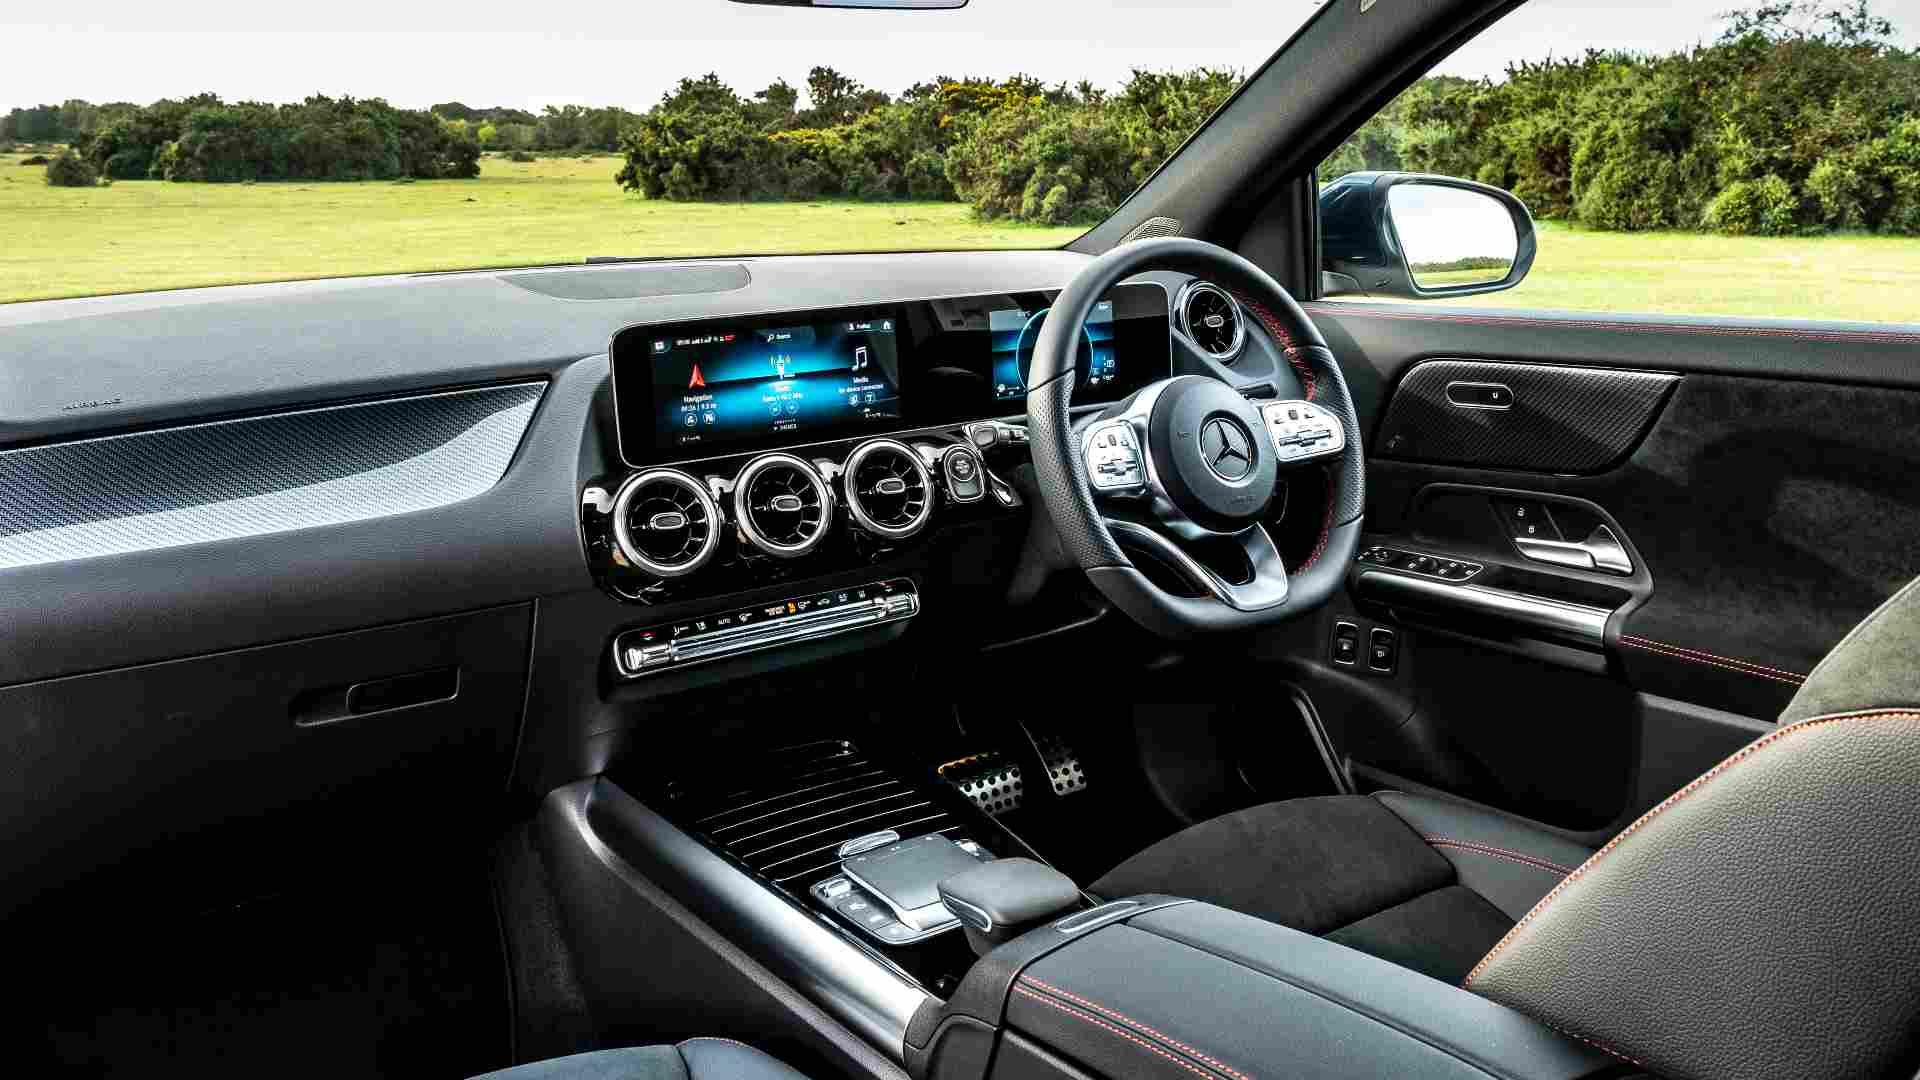 The new GLA gets a twin-screen setup on the inside, with both displays measuring 10.25 inches. Image: Mercedes-Benz